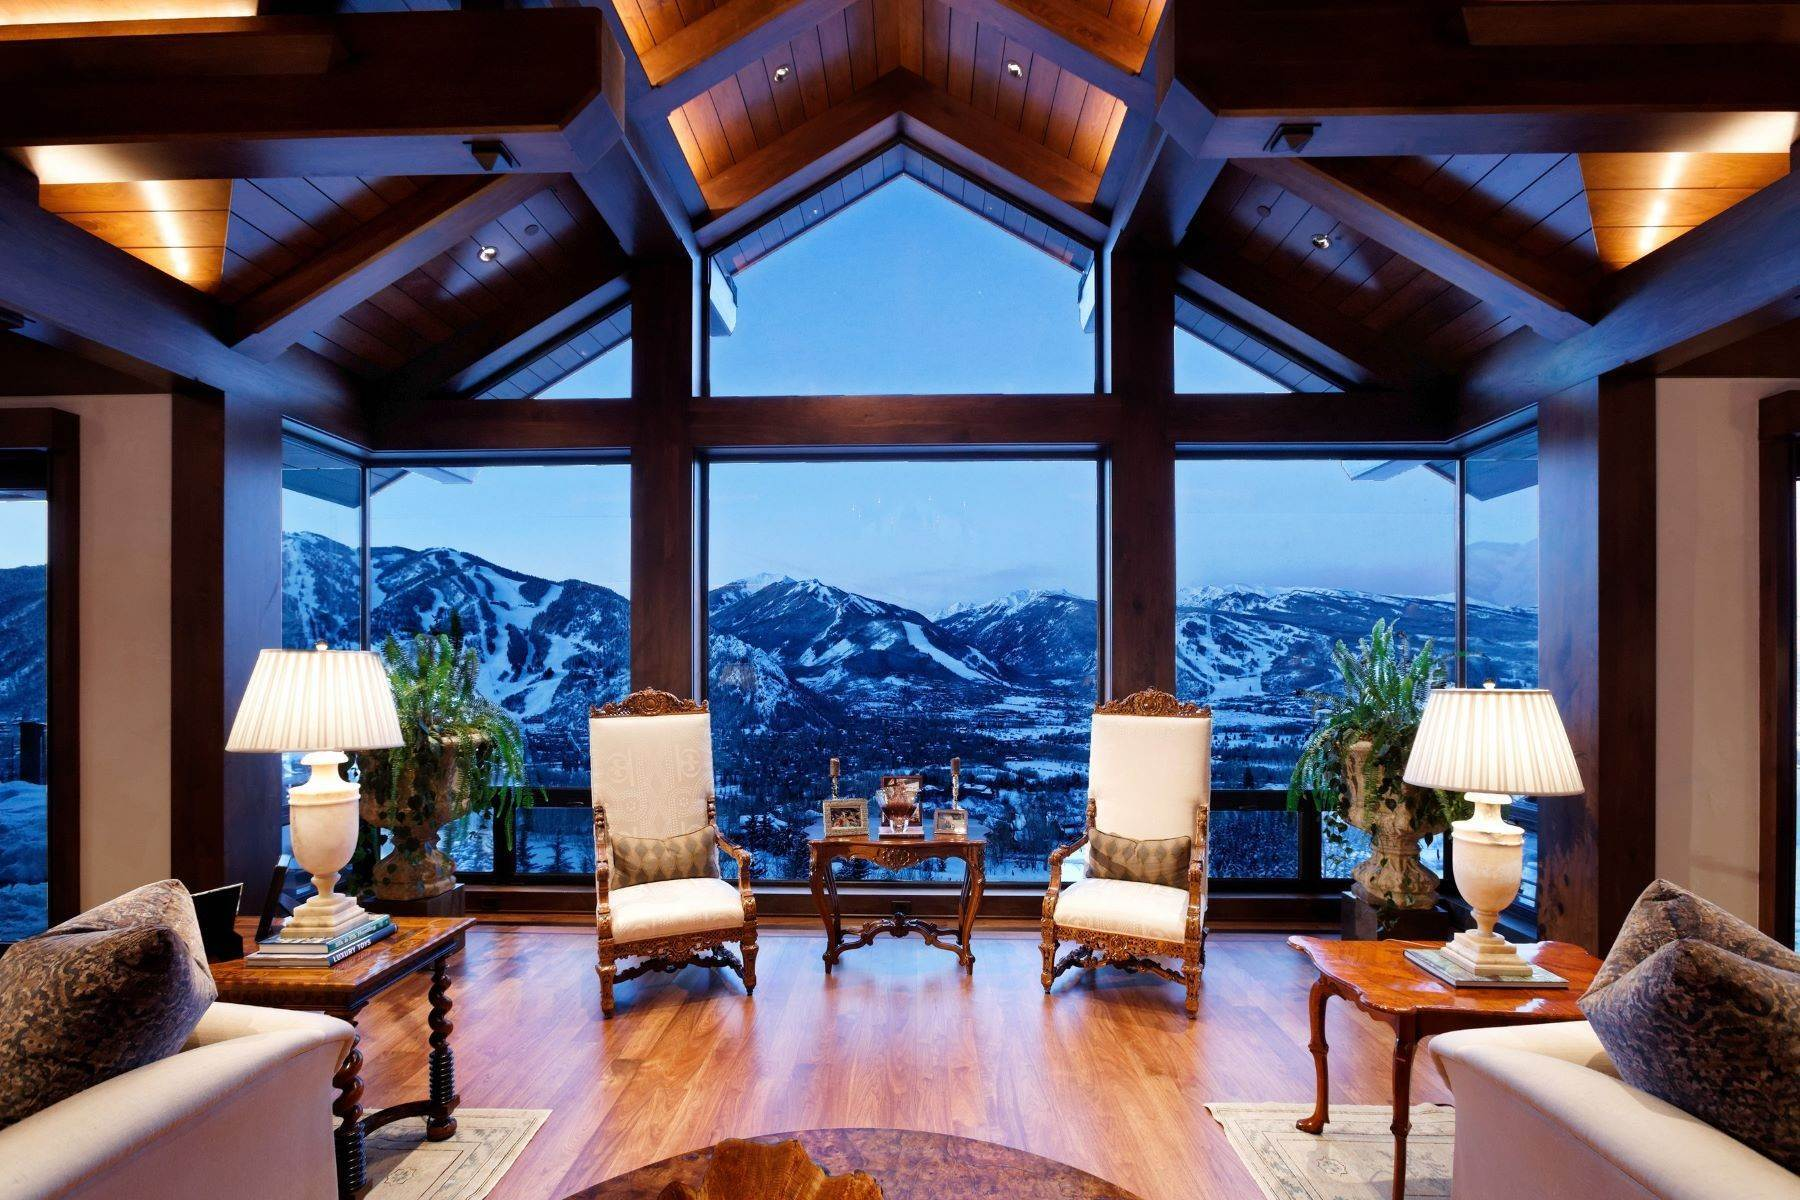 Single Family Homes for Sale at Summit House 155 & 200 Sabin Drive, Red Mountain, Aspen, Colorado, 81611 United States